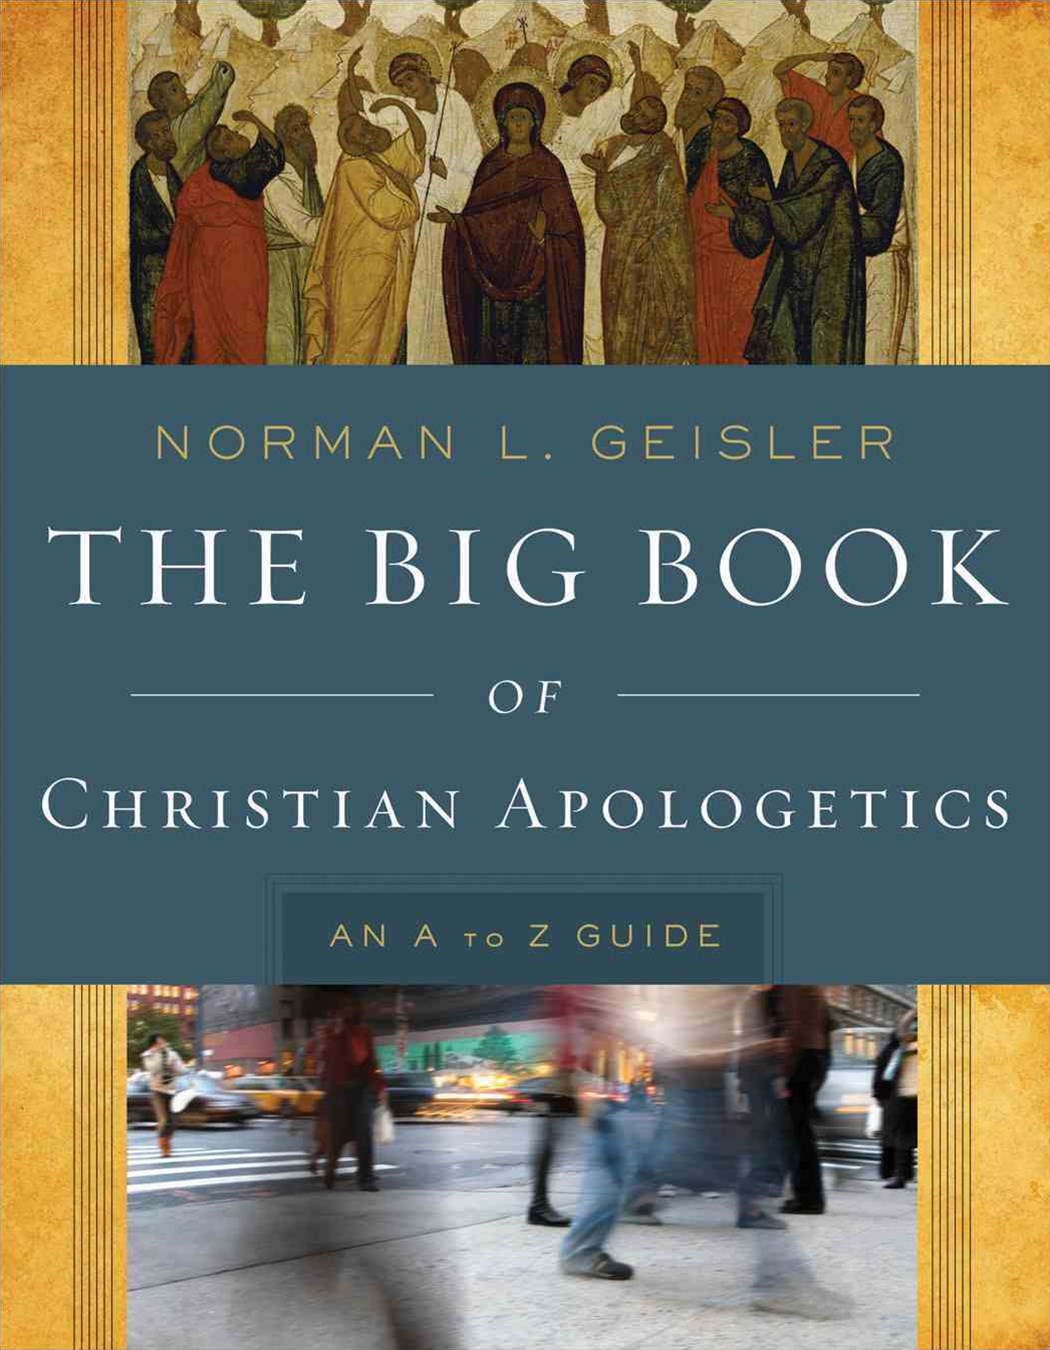 The Big Book of Christian Apologetics